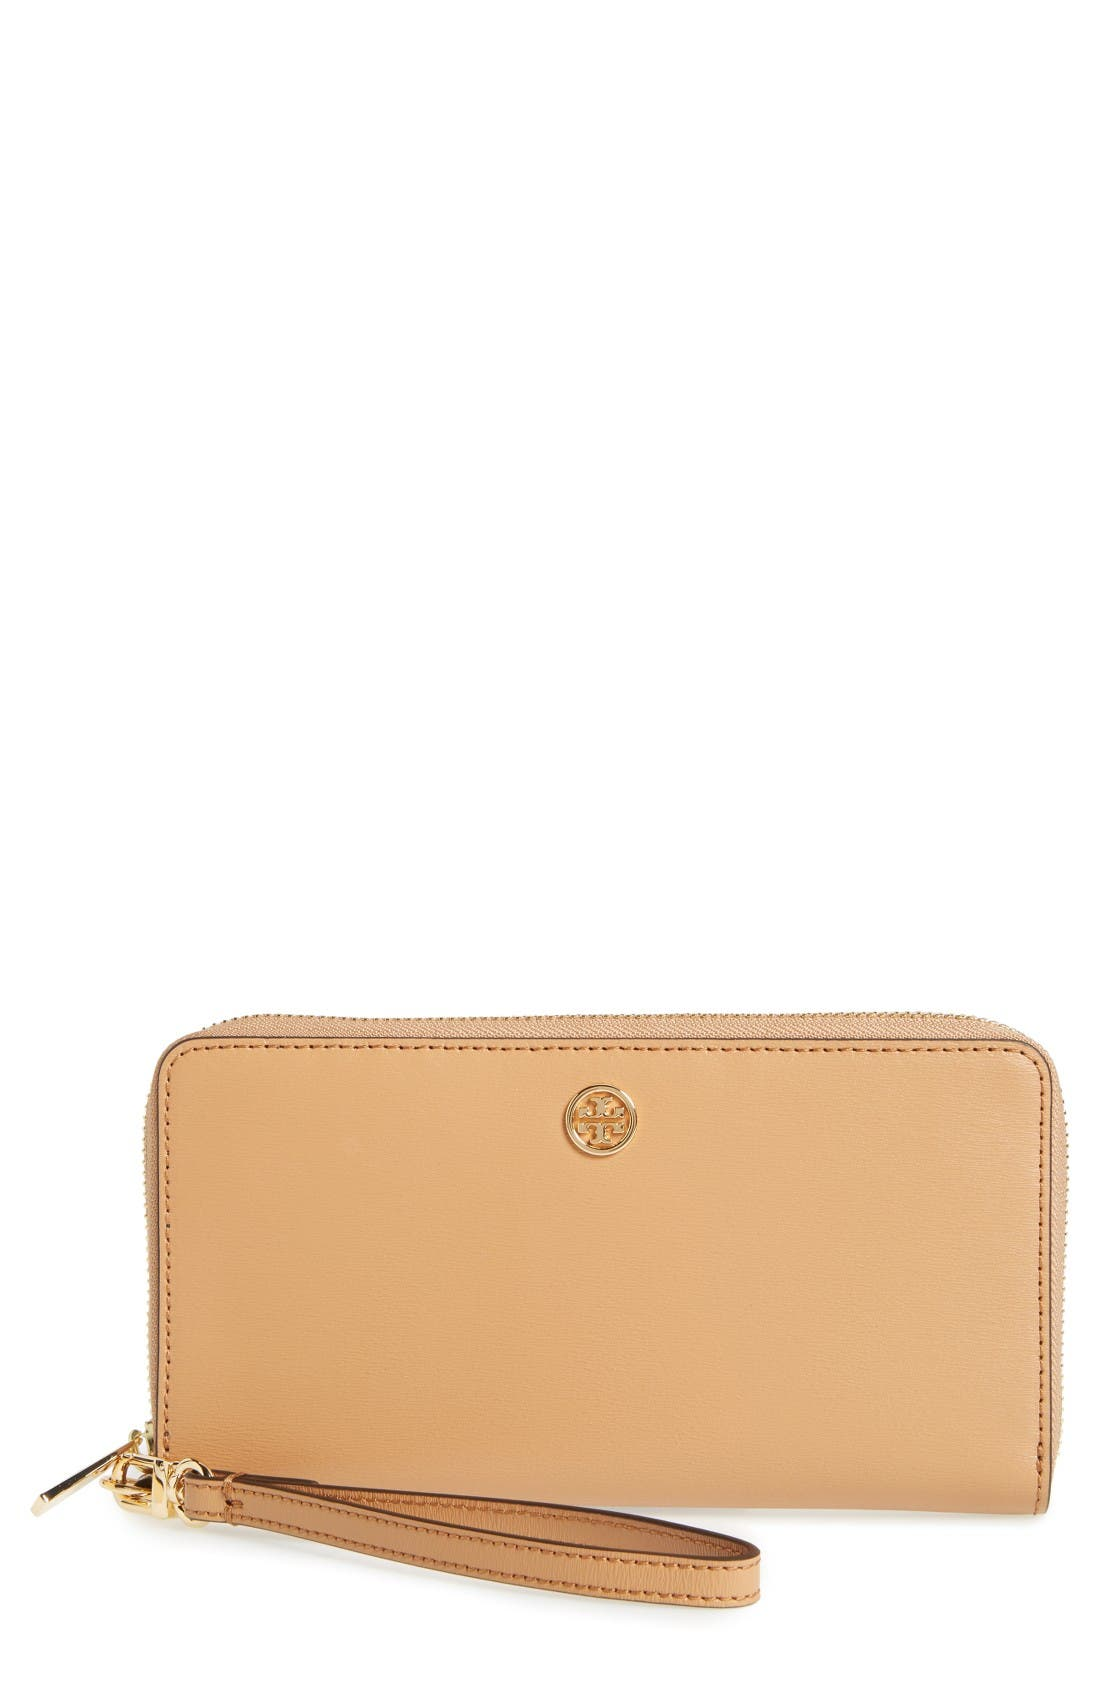 tory burch parker leather continental wallet nordstrom